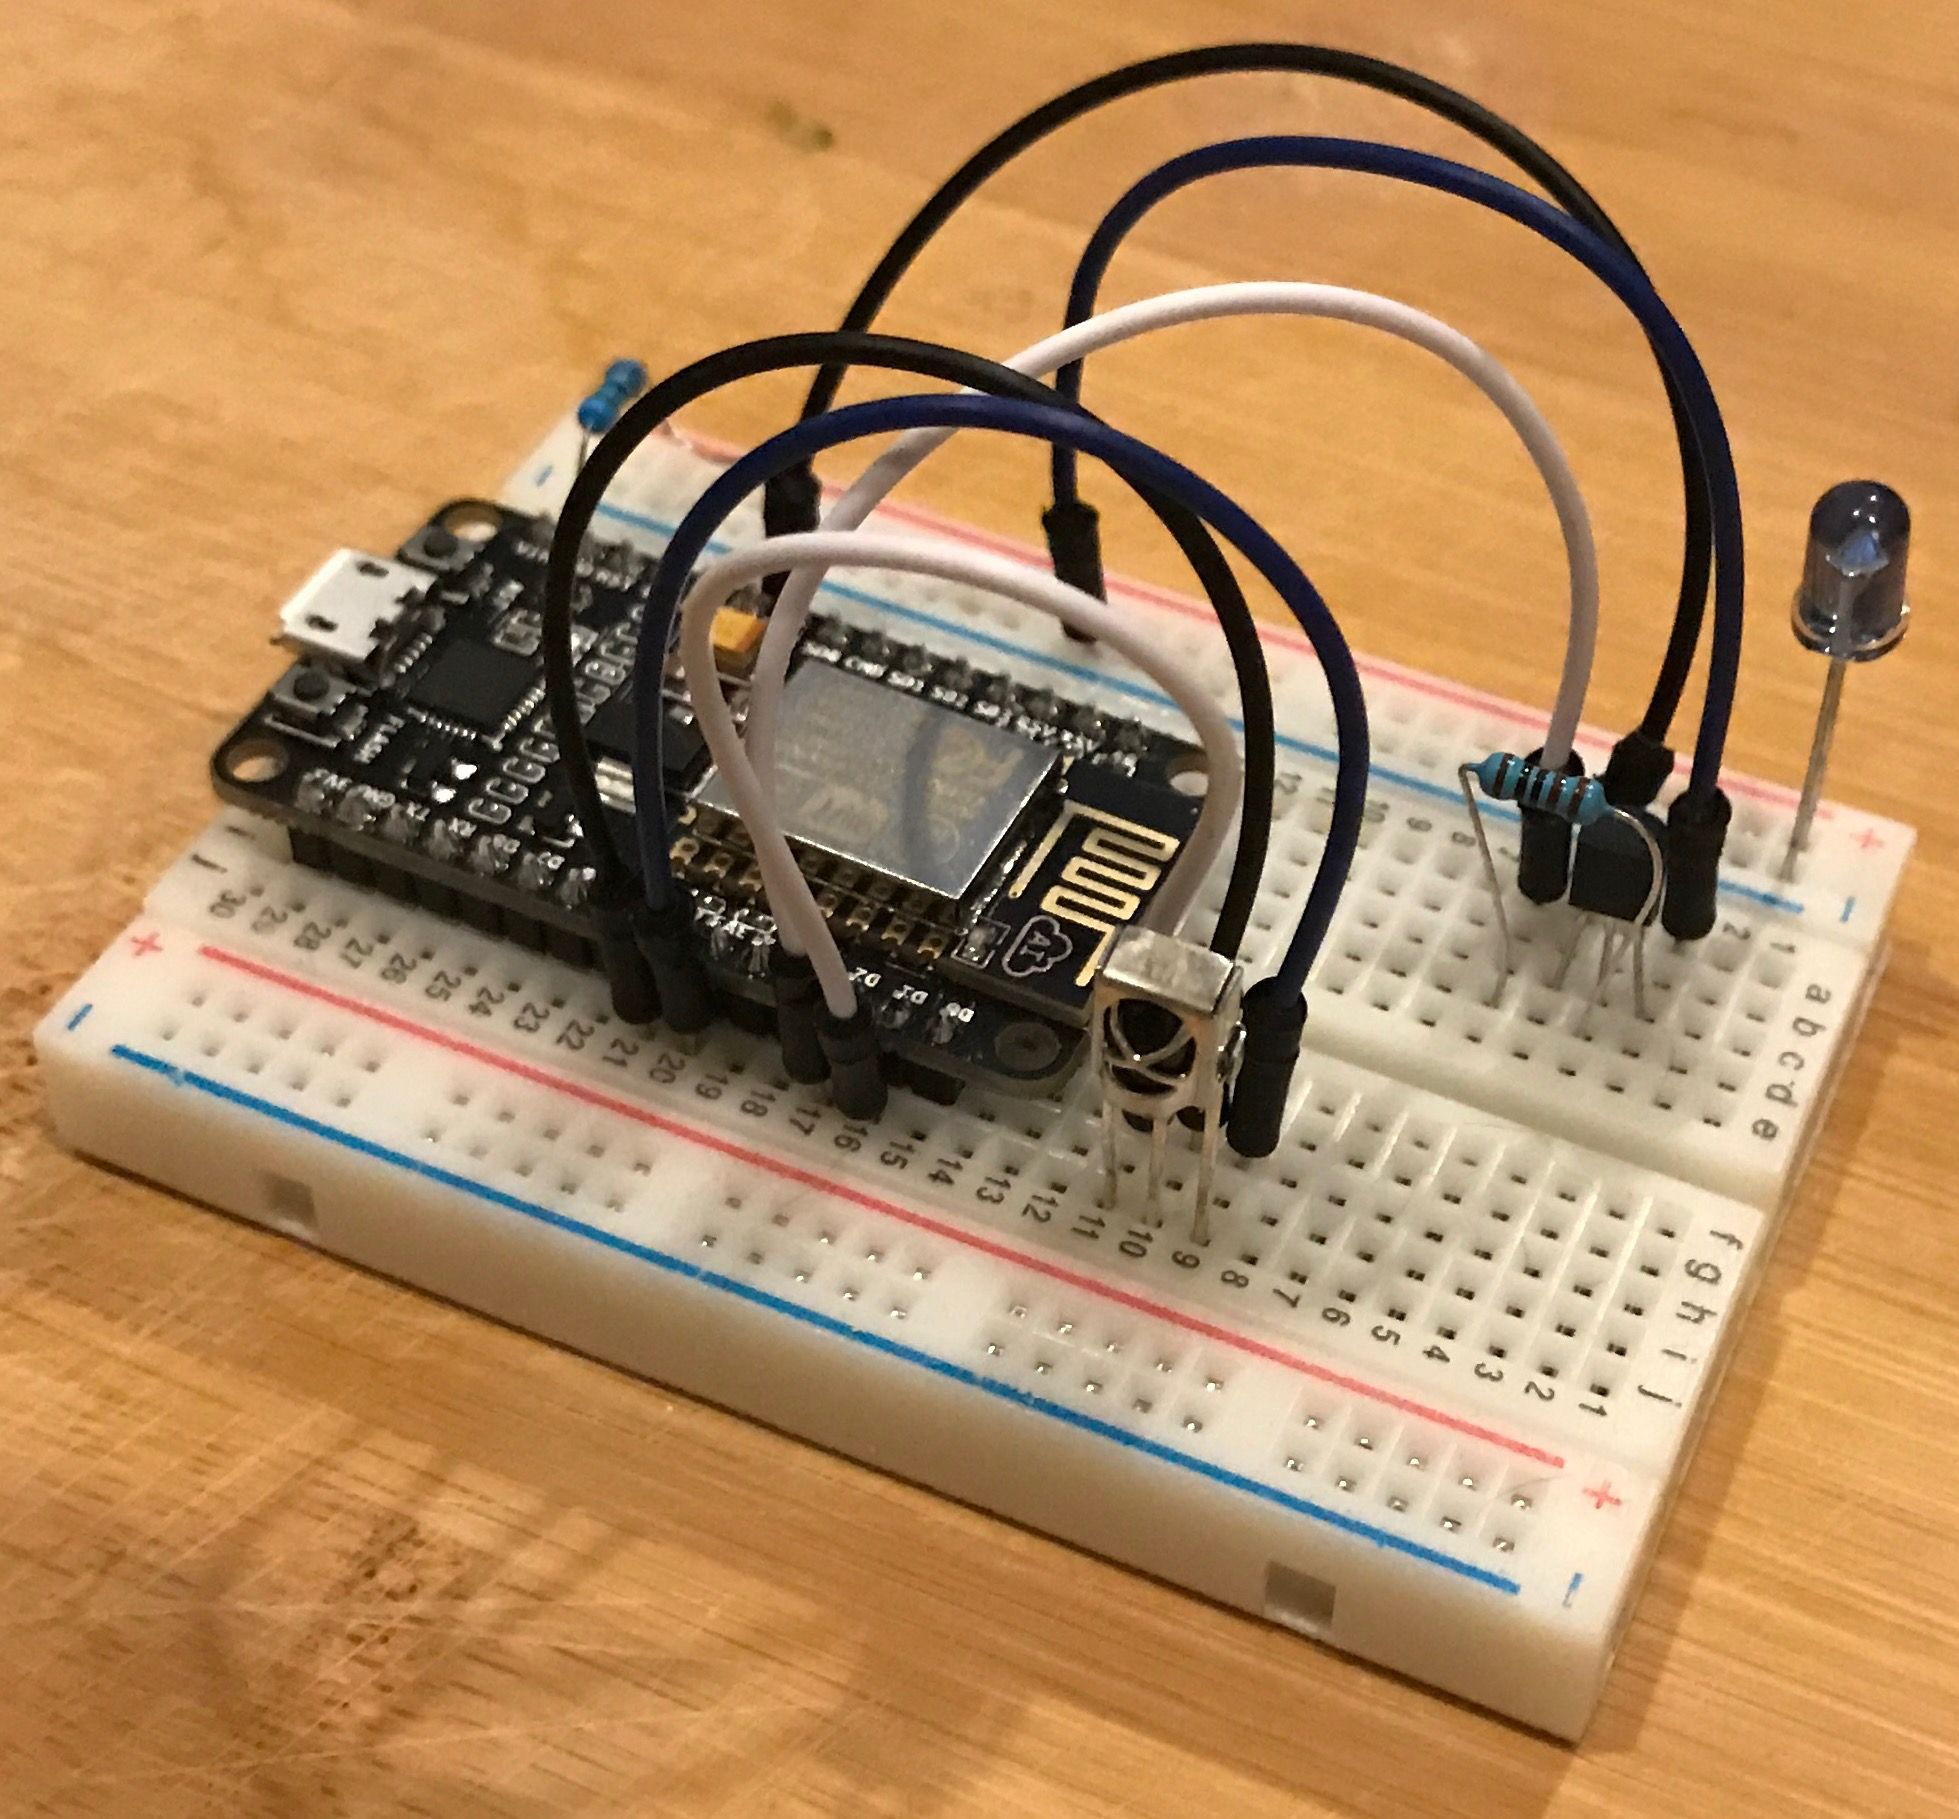 Esp8266 Ir Blaster Using Arduino Ido And Accepting Alexa Input Diy Control Leds On Off With Remote P Marian Infrared